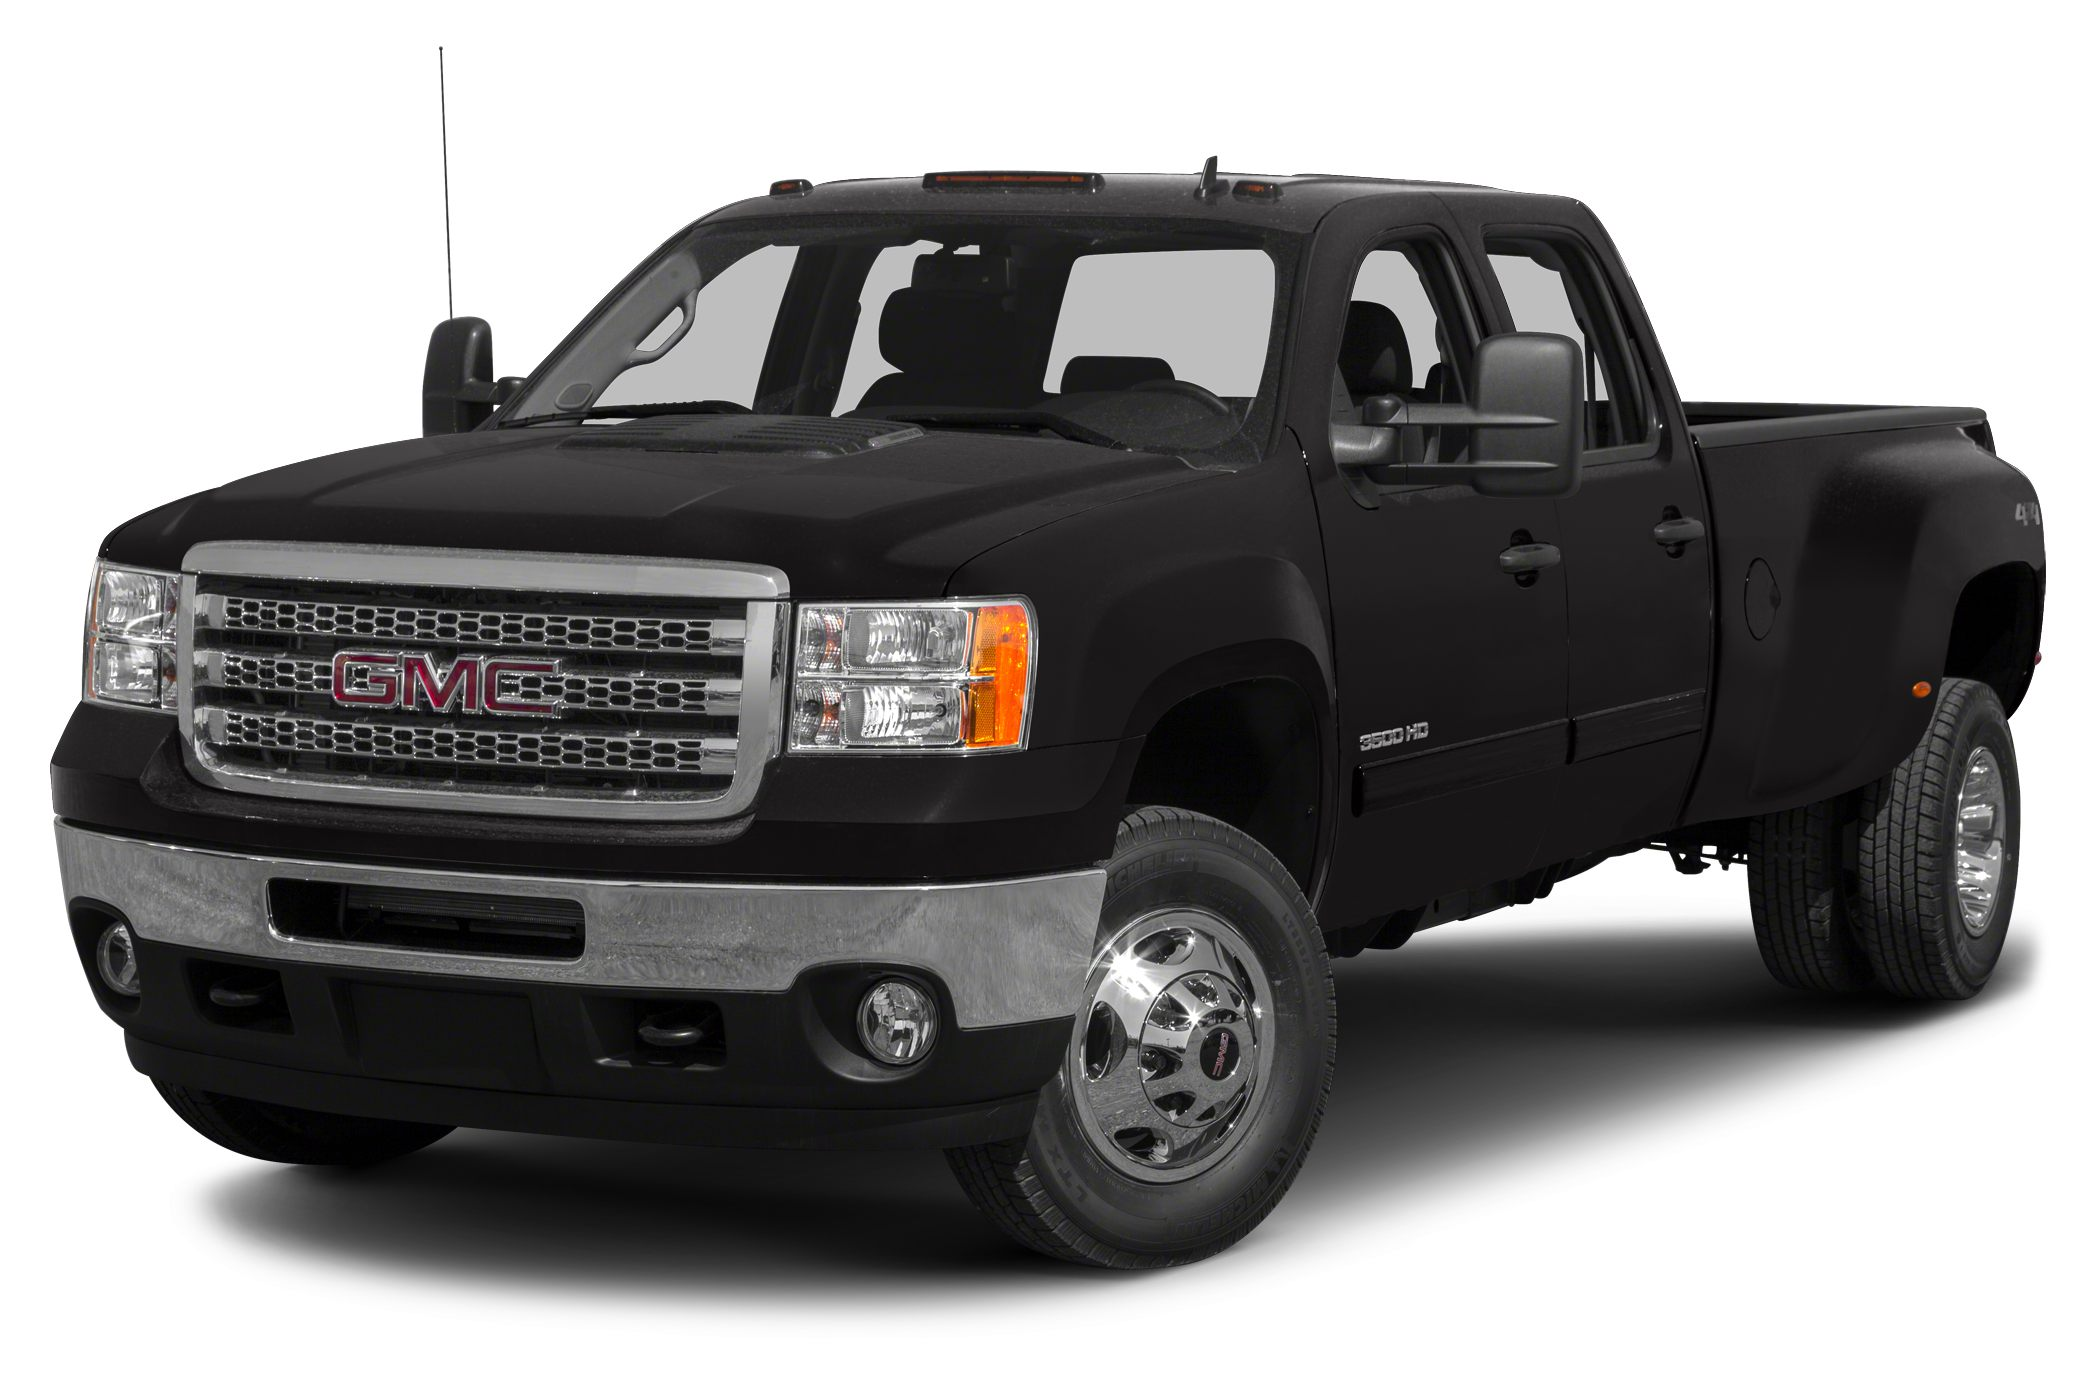 2014 GMC Sierra 3500 SLE Crew Cab Pickup for sale in Zanesville for $46,988 with 20,468 miles.